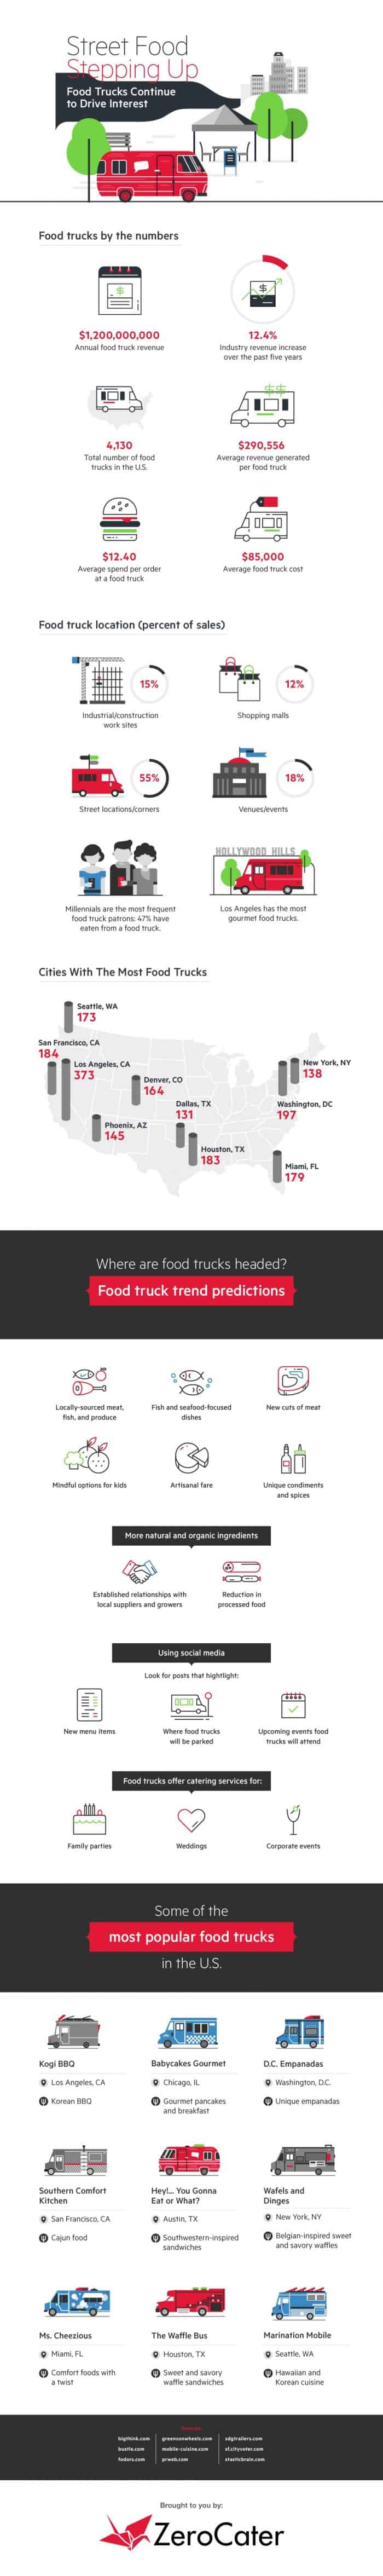 Food Trucks By The Numbers